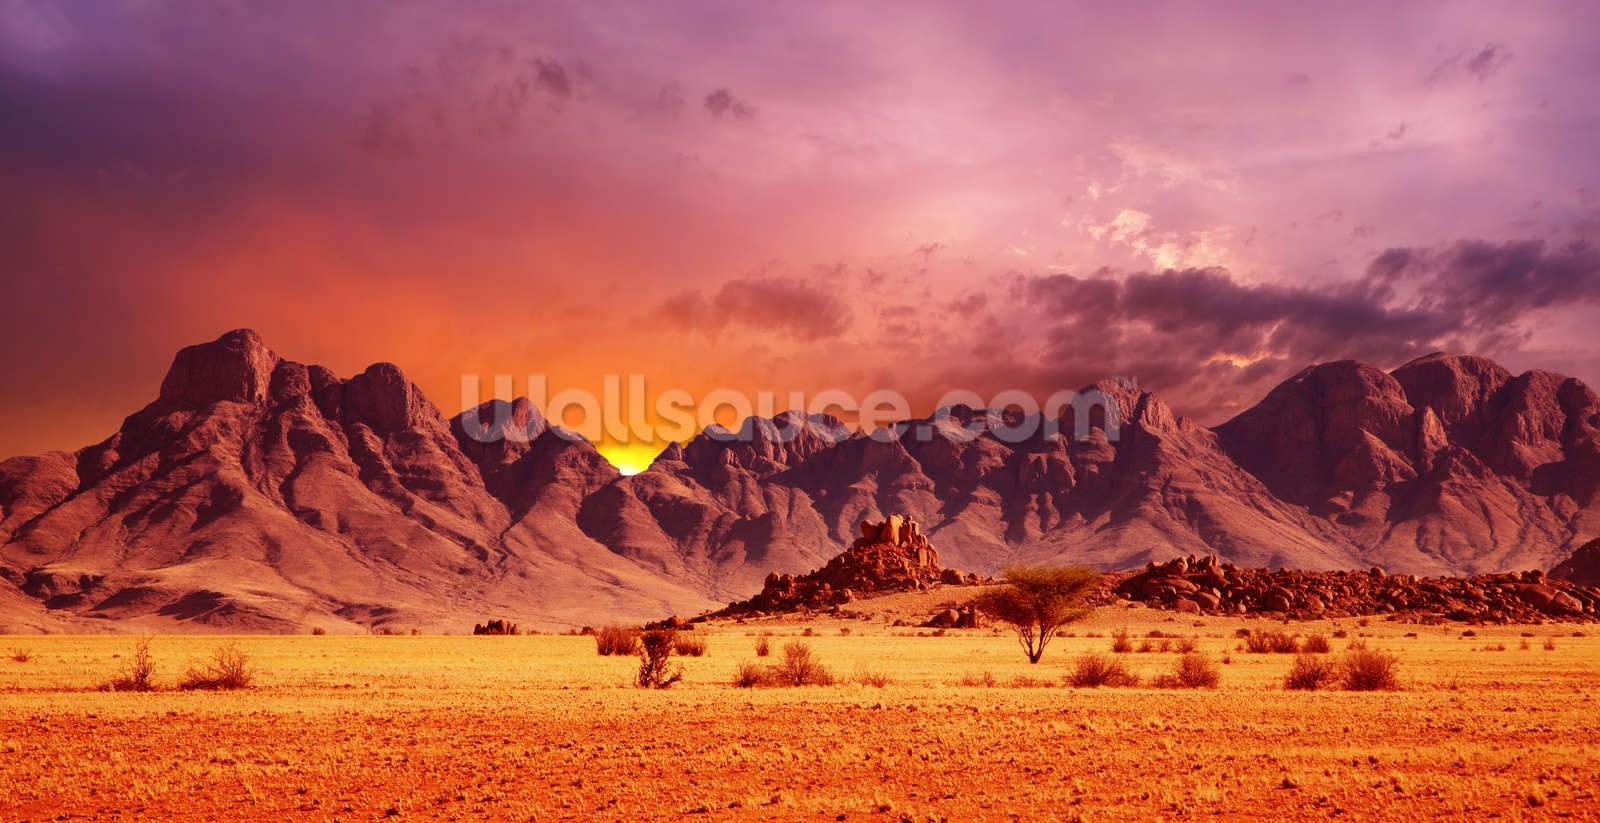 Namib desert sunset wallpaper wall mural wallsauce usa for Desert mural wallpaper